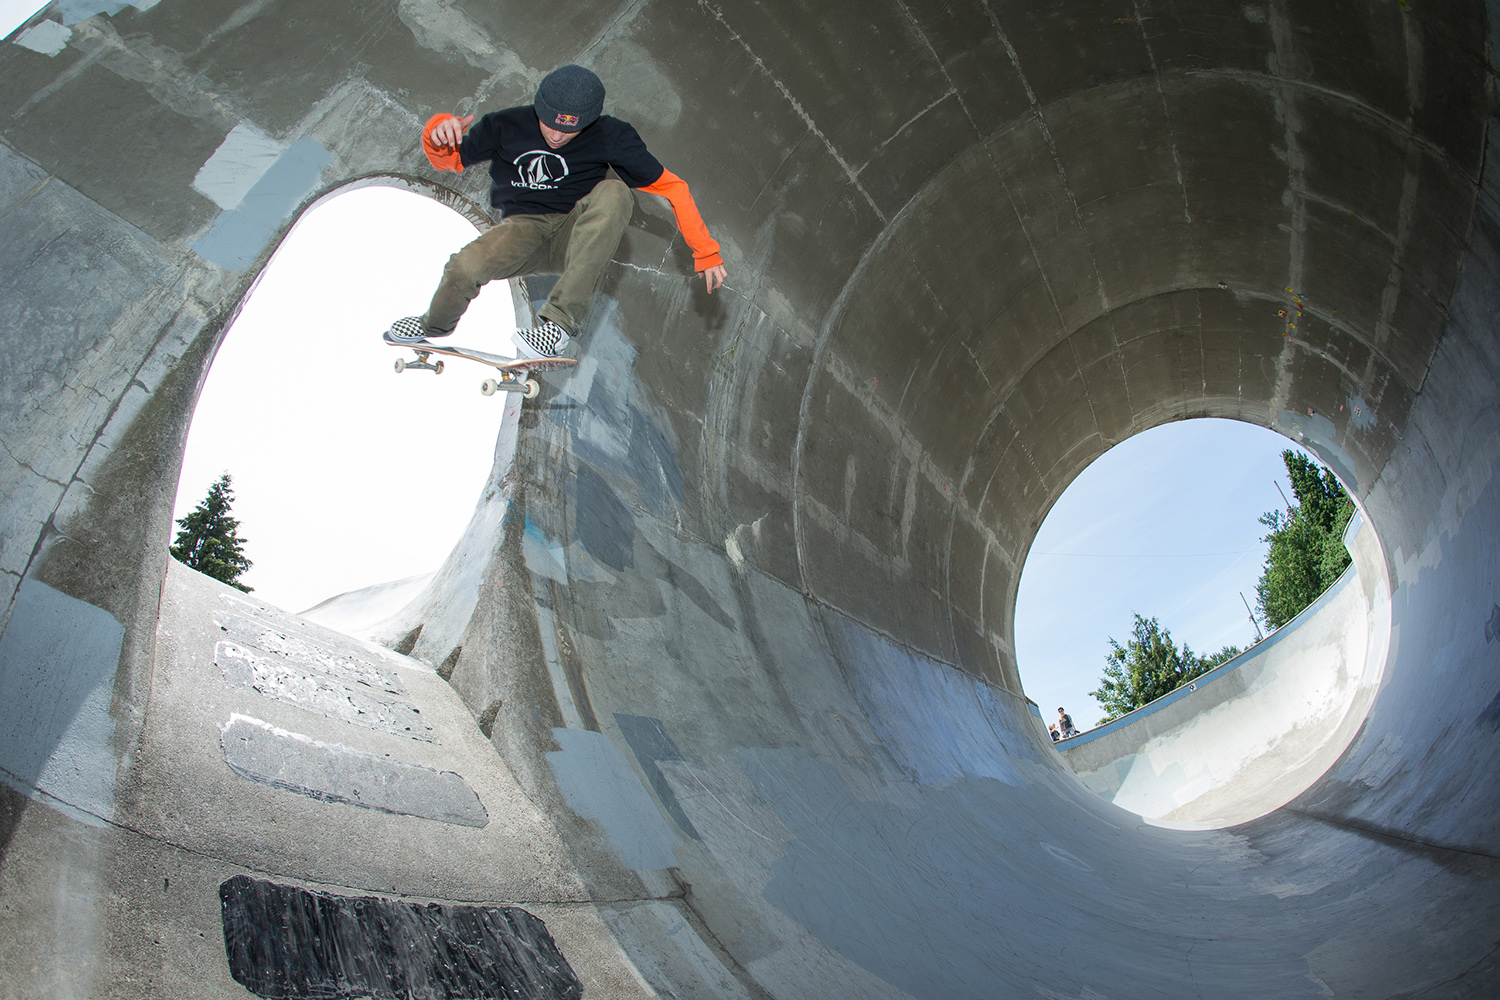 Visiting professional skater CJ Collins clears Pier Park's full pipe mouse hole with an impressive backside 360.